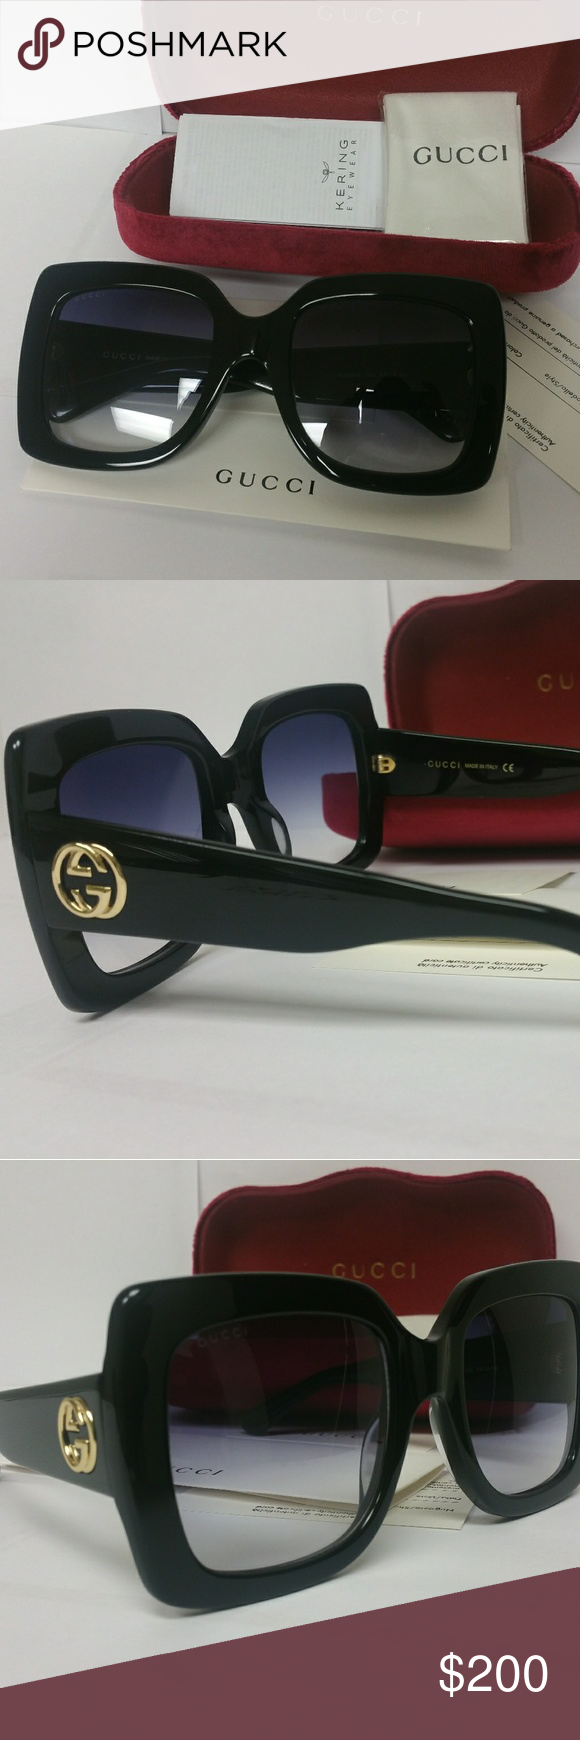 93ceeb81009a Gucci Women's Sunglasses model GG0083S Gucci Women's Sunglasses model-  GG0083S-001 55 Comes with full package 100% Authentic GUCCI Tortoise large  Frame.